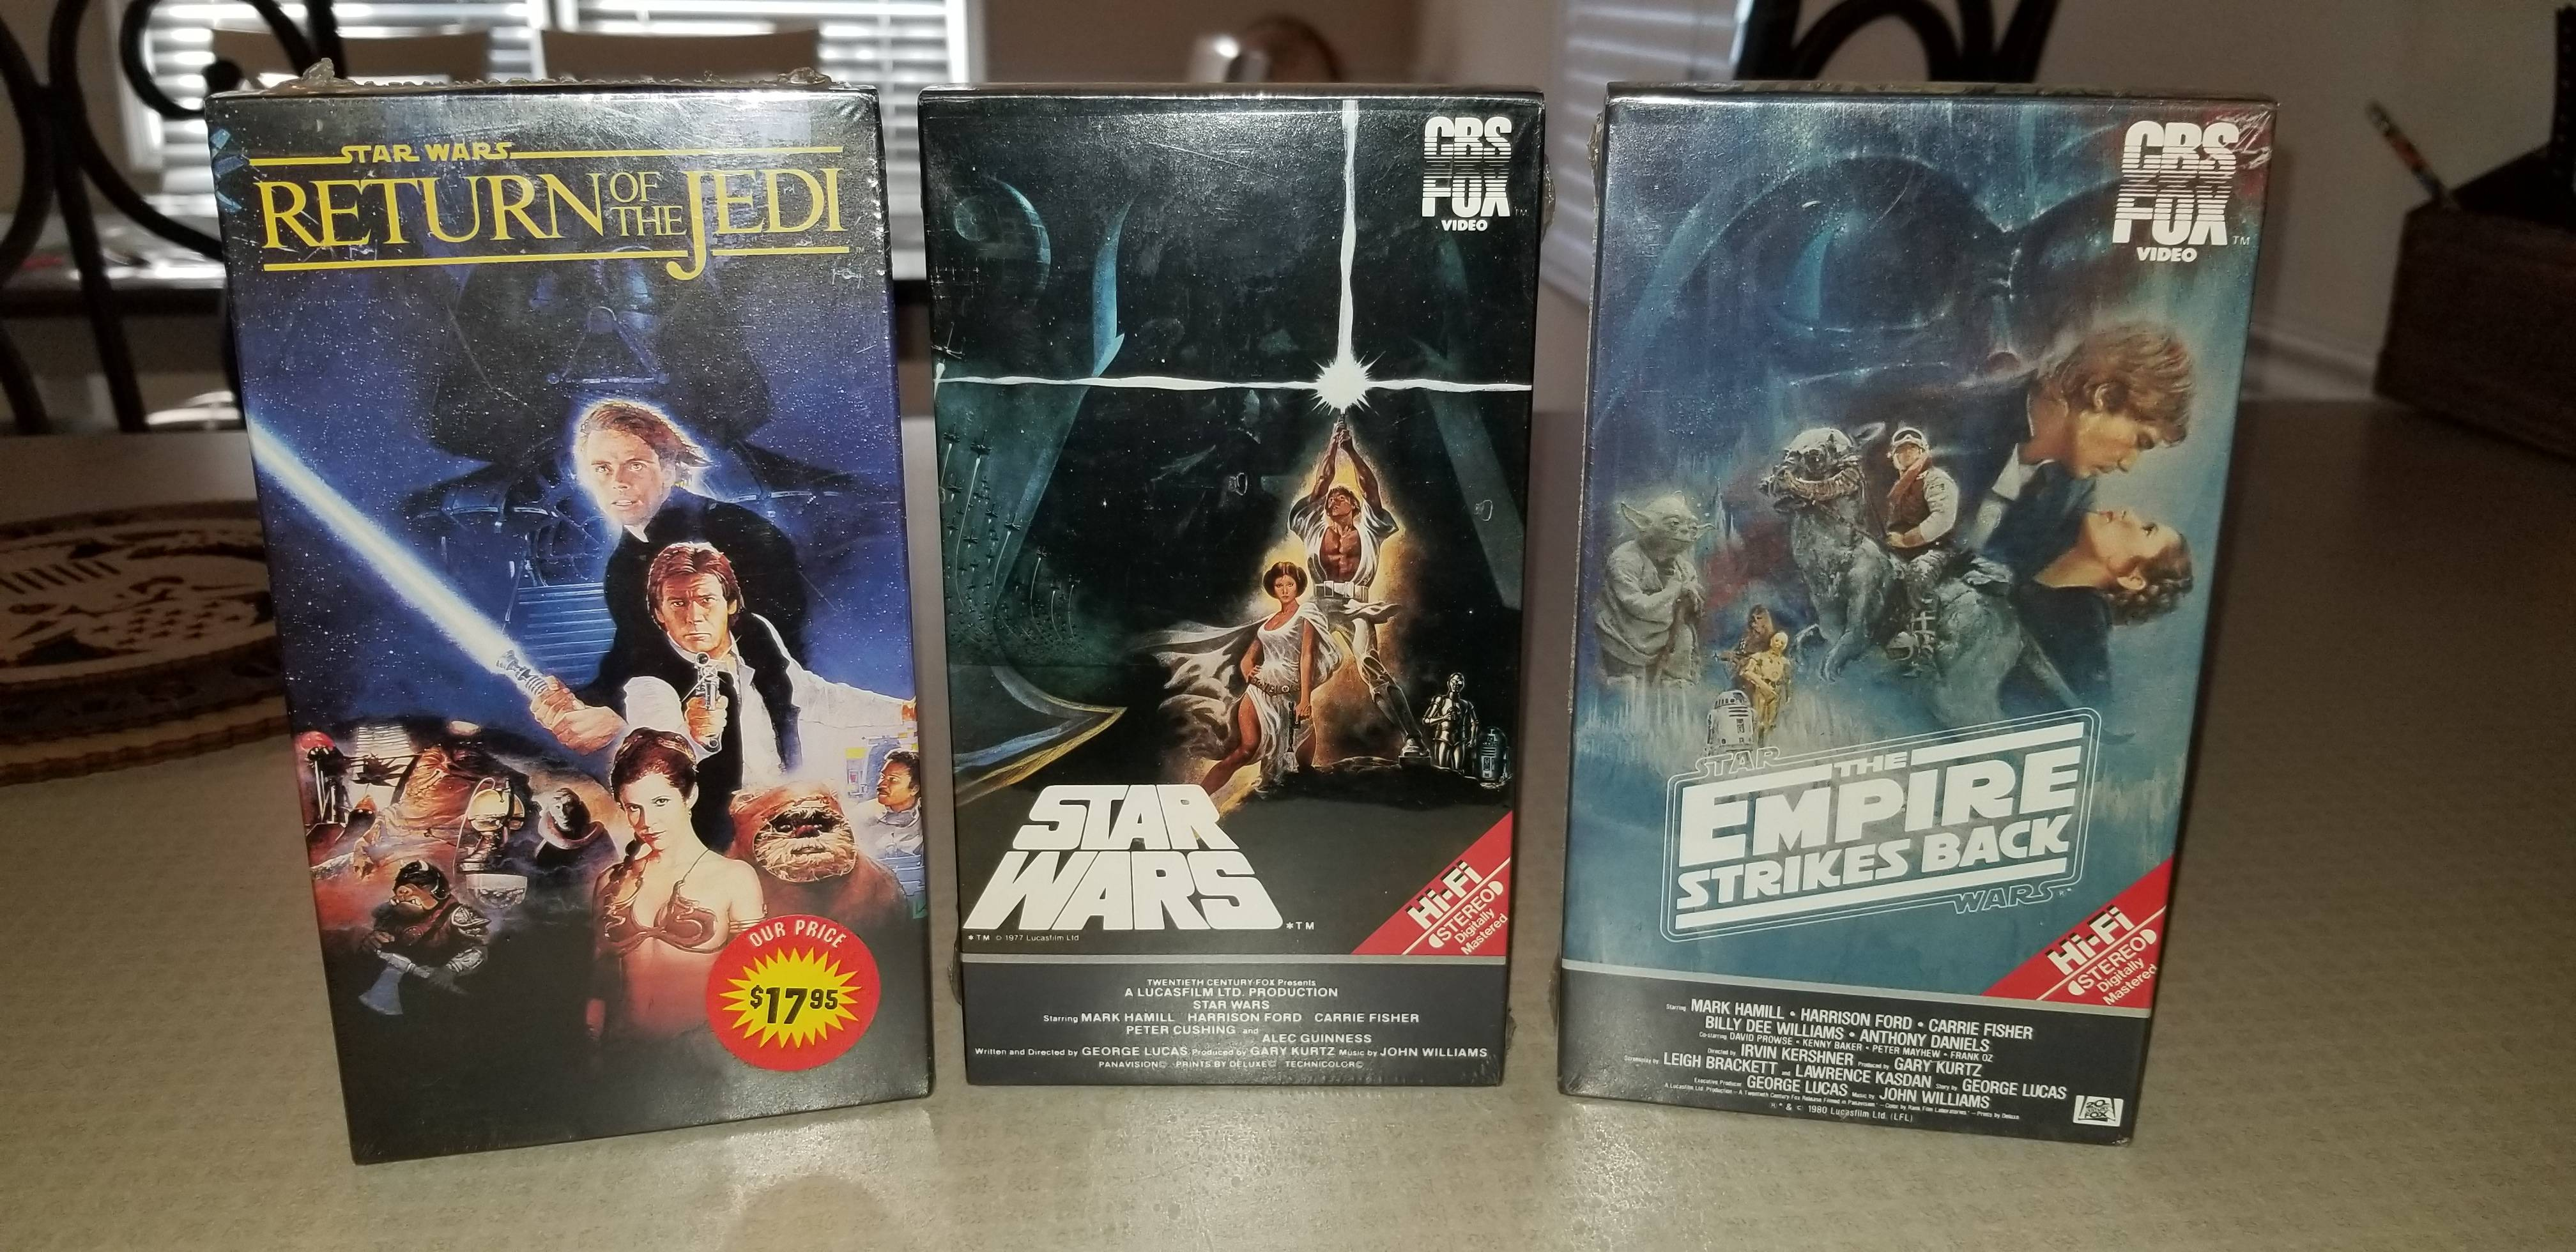 Old Star Wars VHS\'s. Thought you all would like to see them.